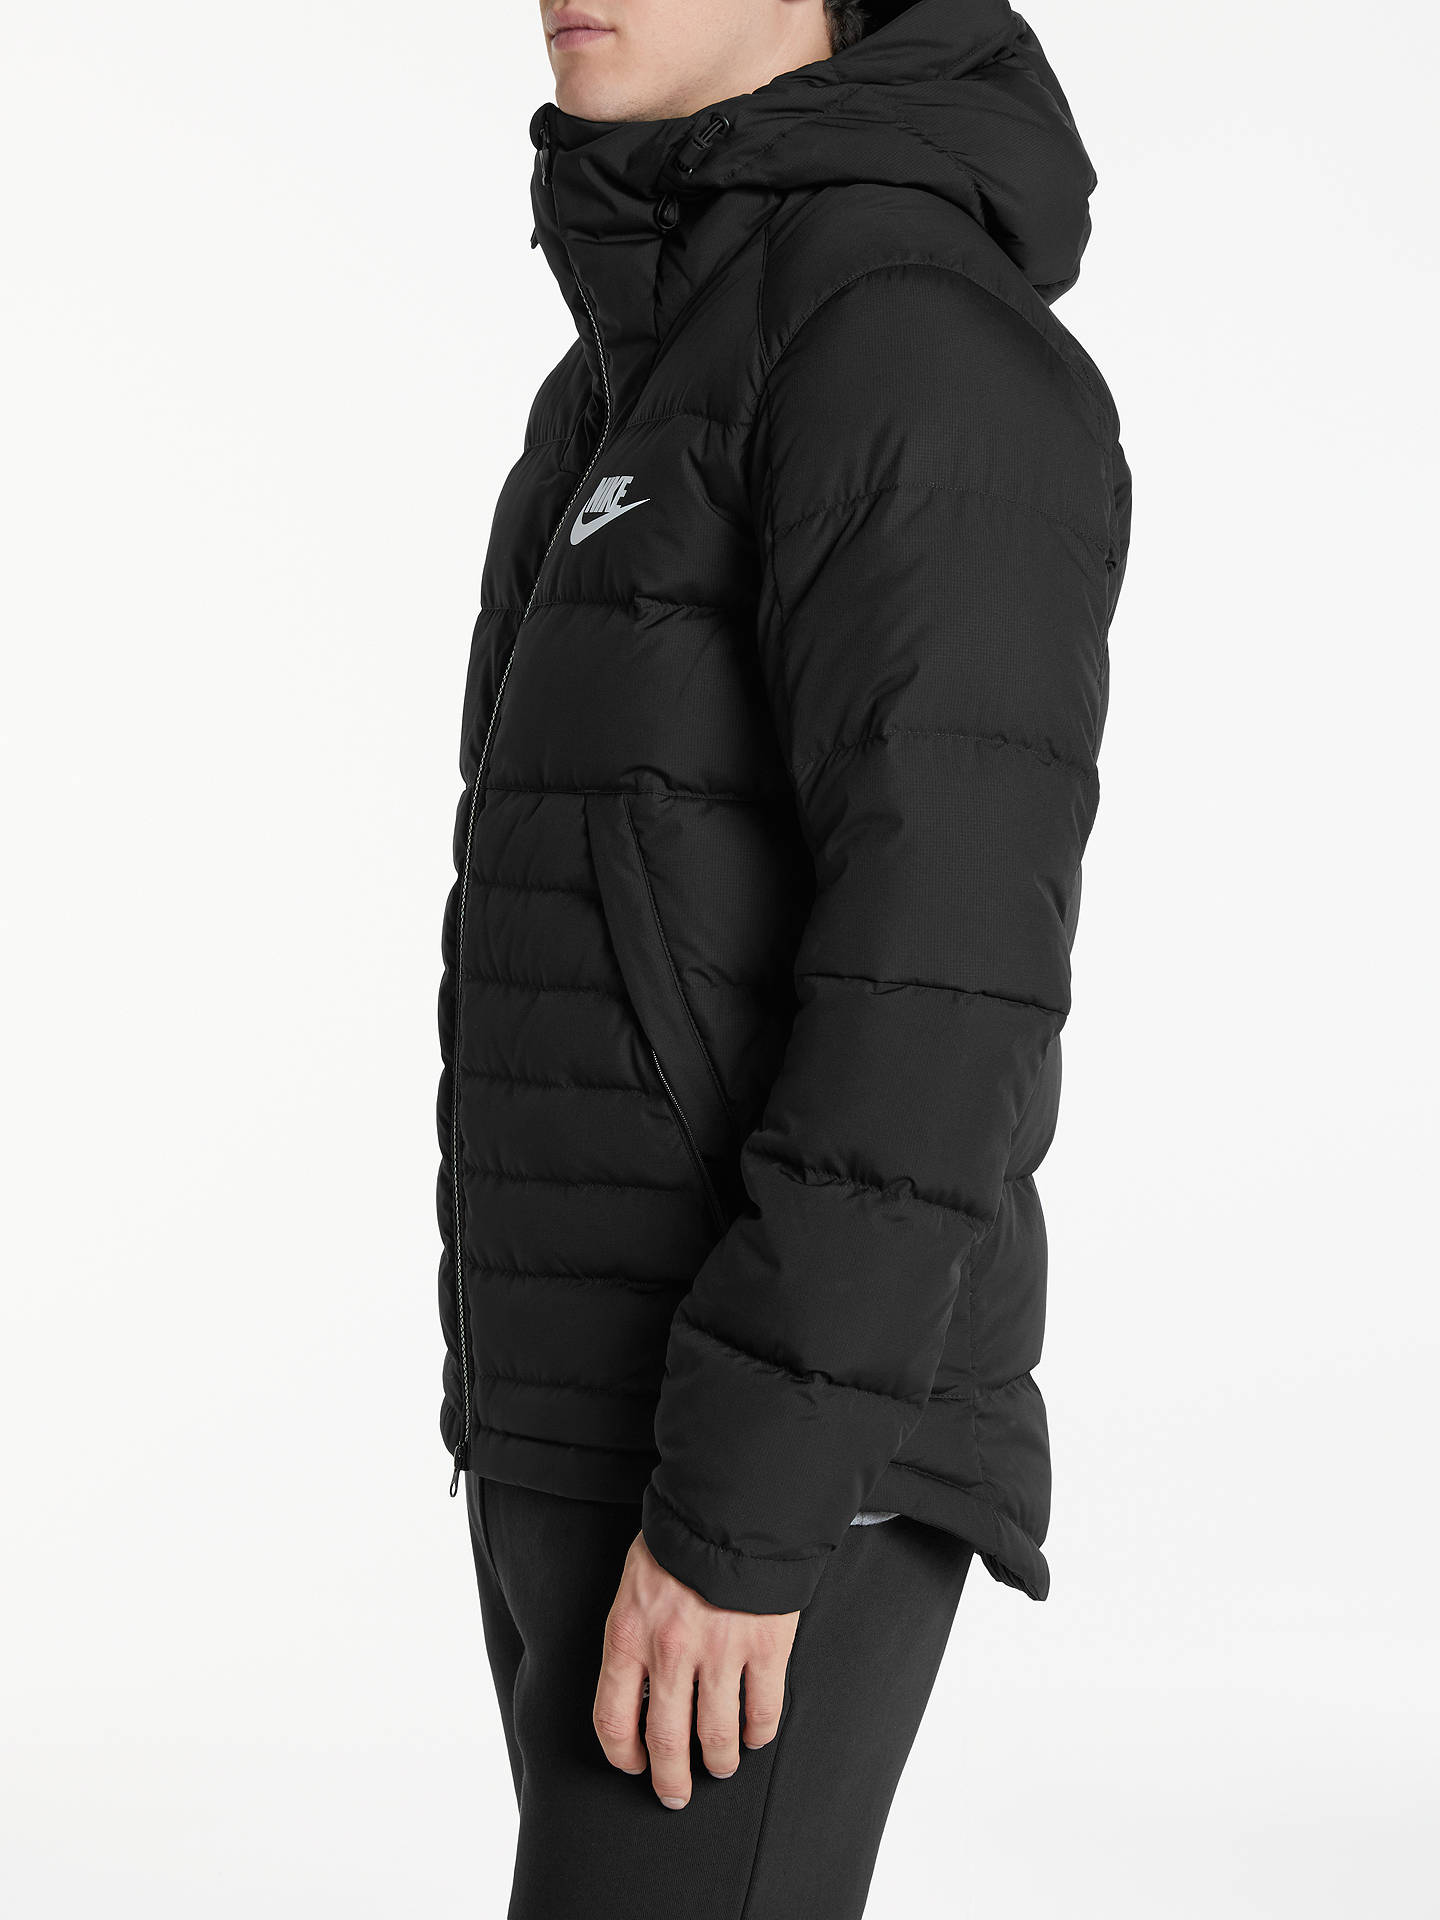 Agacharse Íntimo orden  Nike Sportswear Down Insulated Jacket, Black at John Lewis & Partners